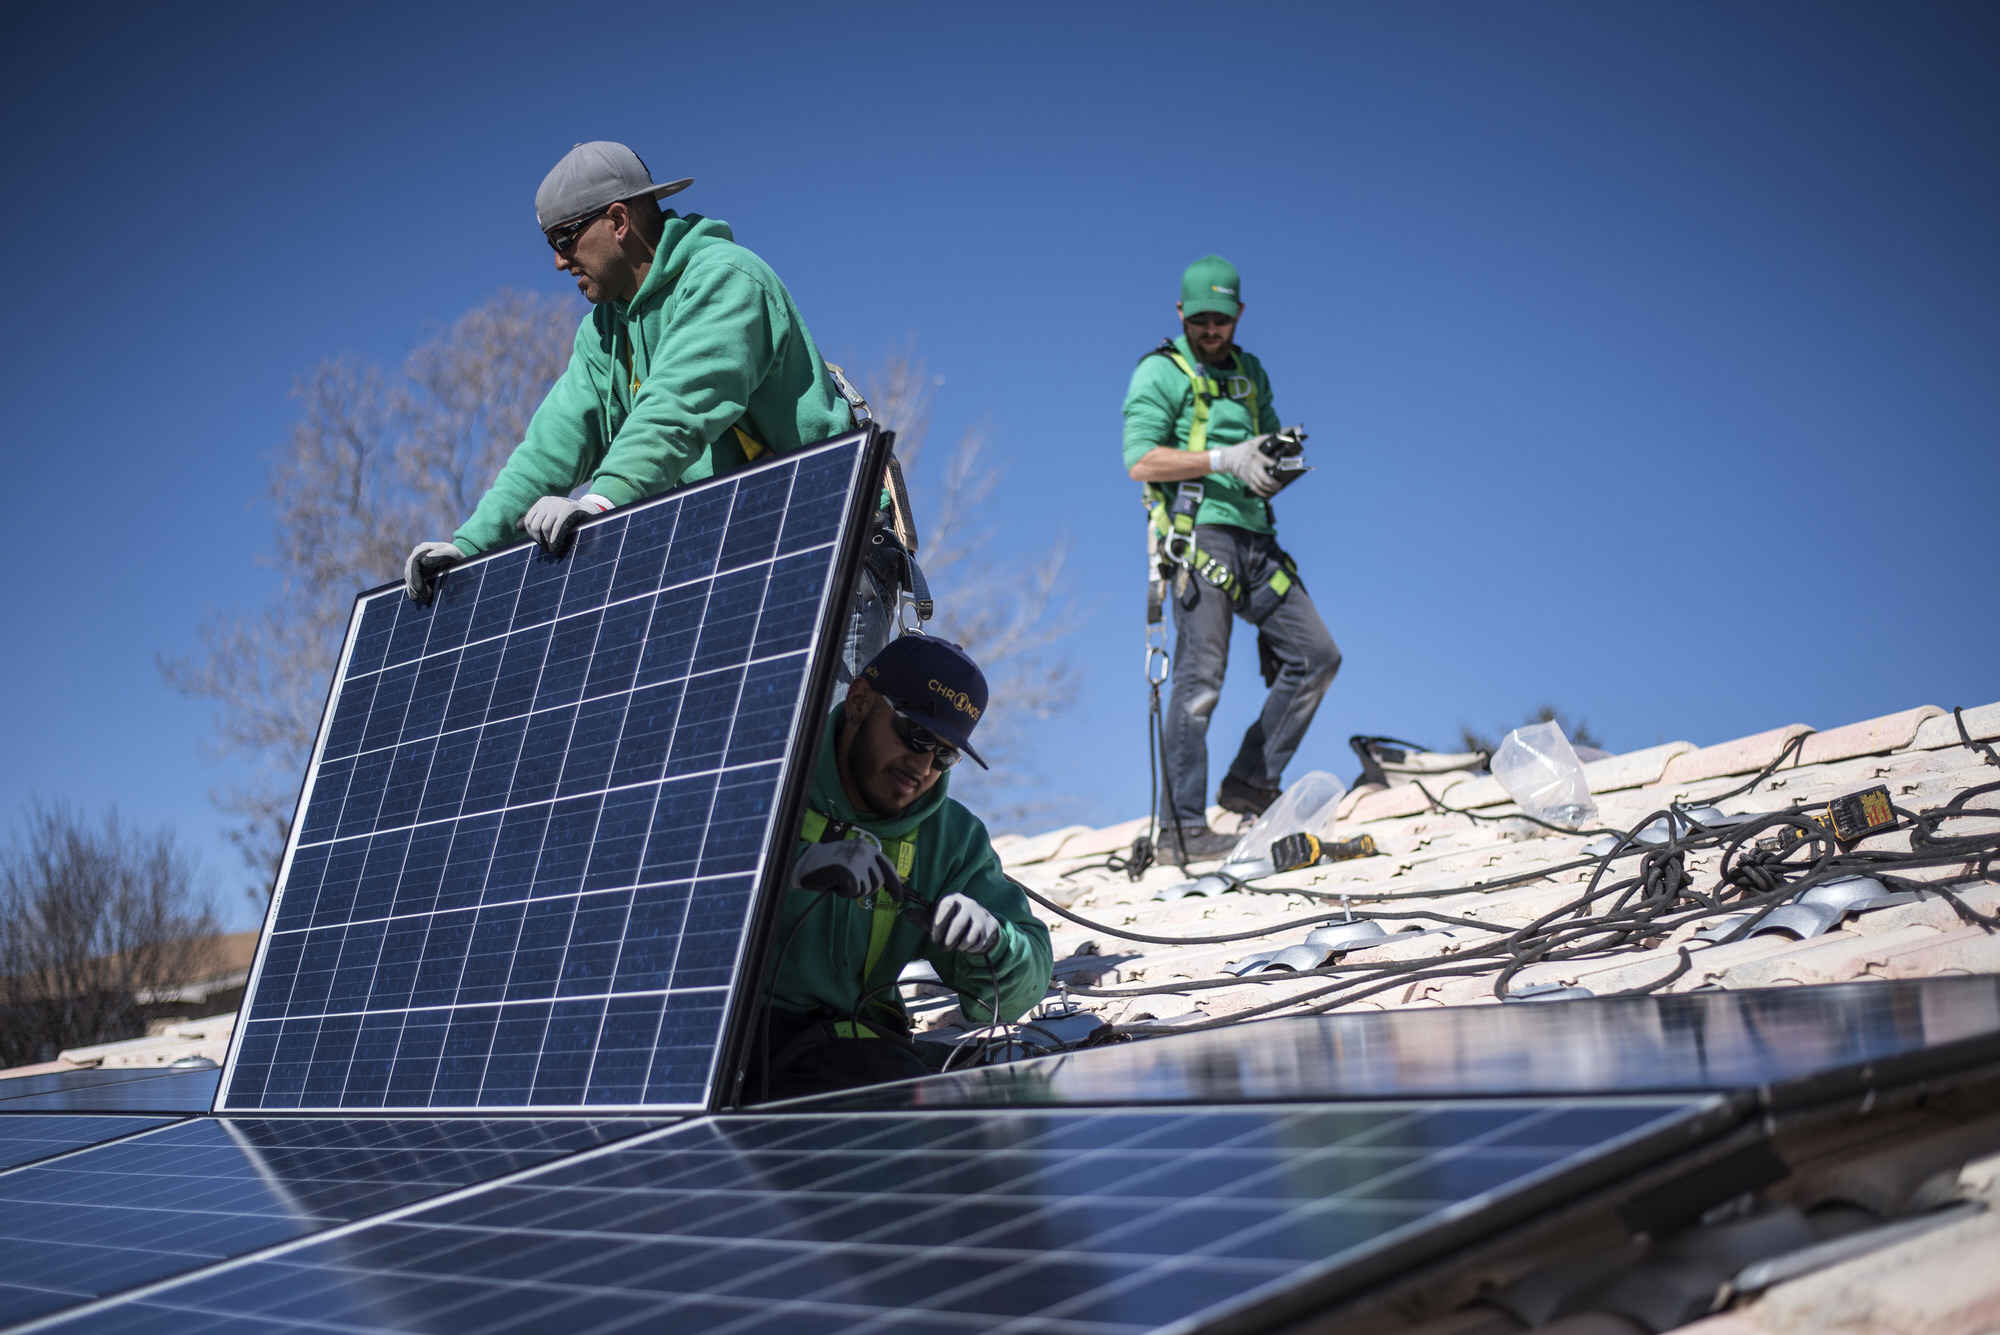 Workers secure solar panels to a rooftop during a SolarCity Corp. residential installation in Albuquerque, New Mexico, U.S., on Monday, Feb. 8, 2016. SolarCity is scheduled to release earnings figures on February 9. Photographer: Sergio Flores/Bloomberg